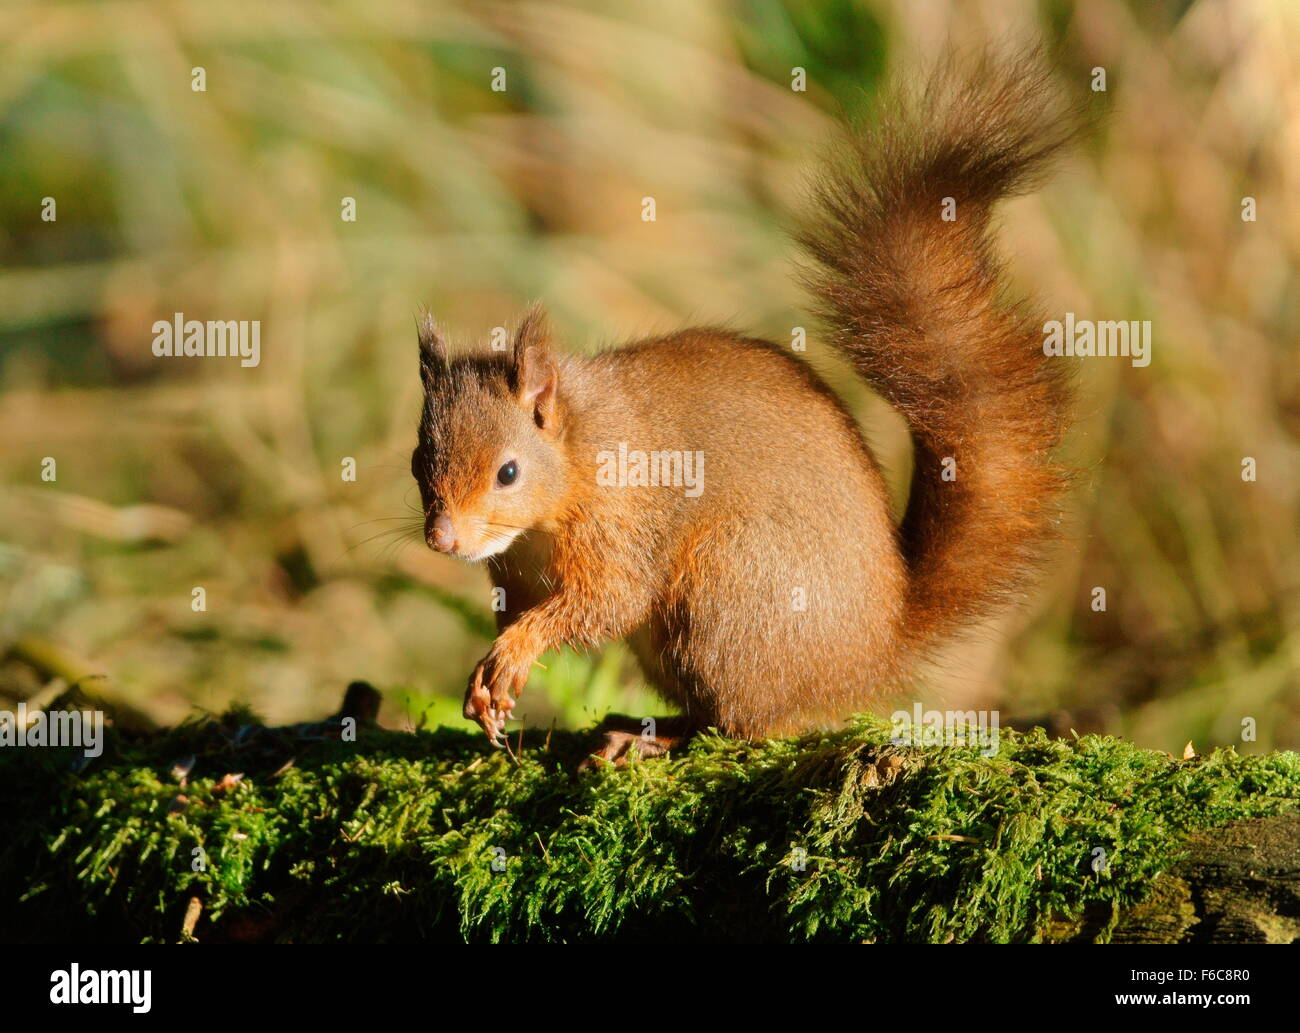 Red squirrel in profile on a mossy fallen tree - Stock Image